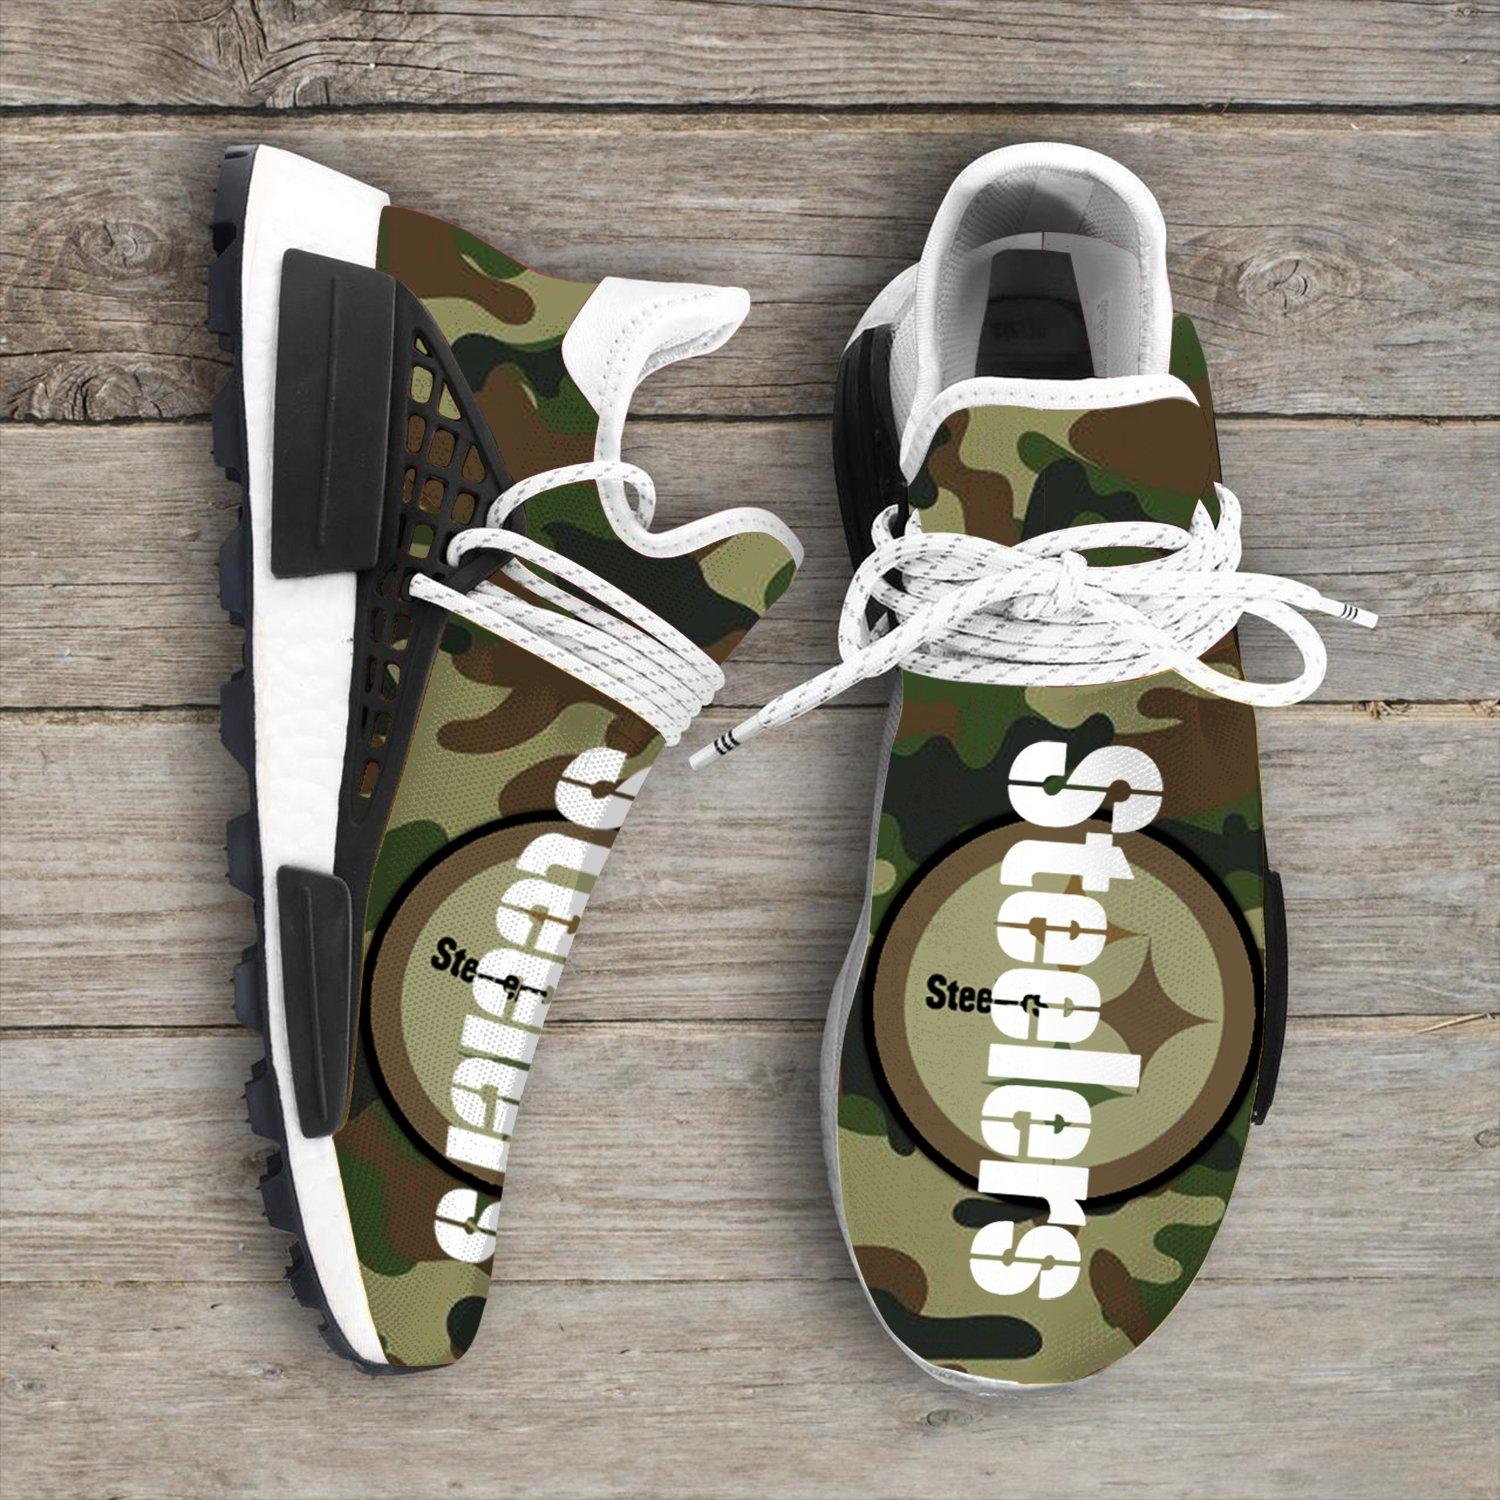 Camo Camouflage Pittsburgh Steelers Nfl NMD Human Shoes